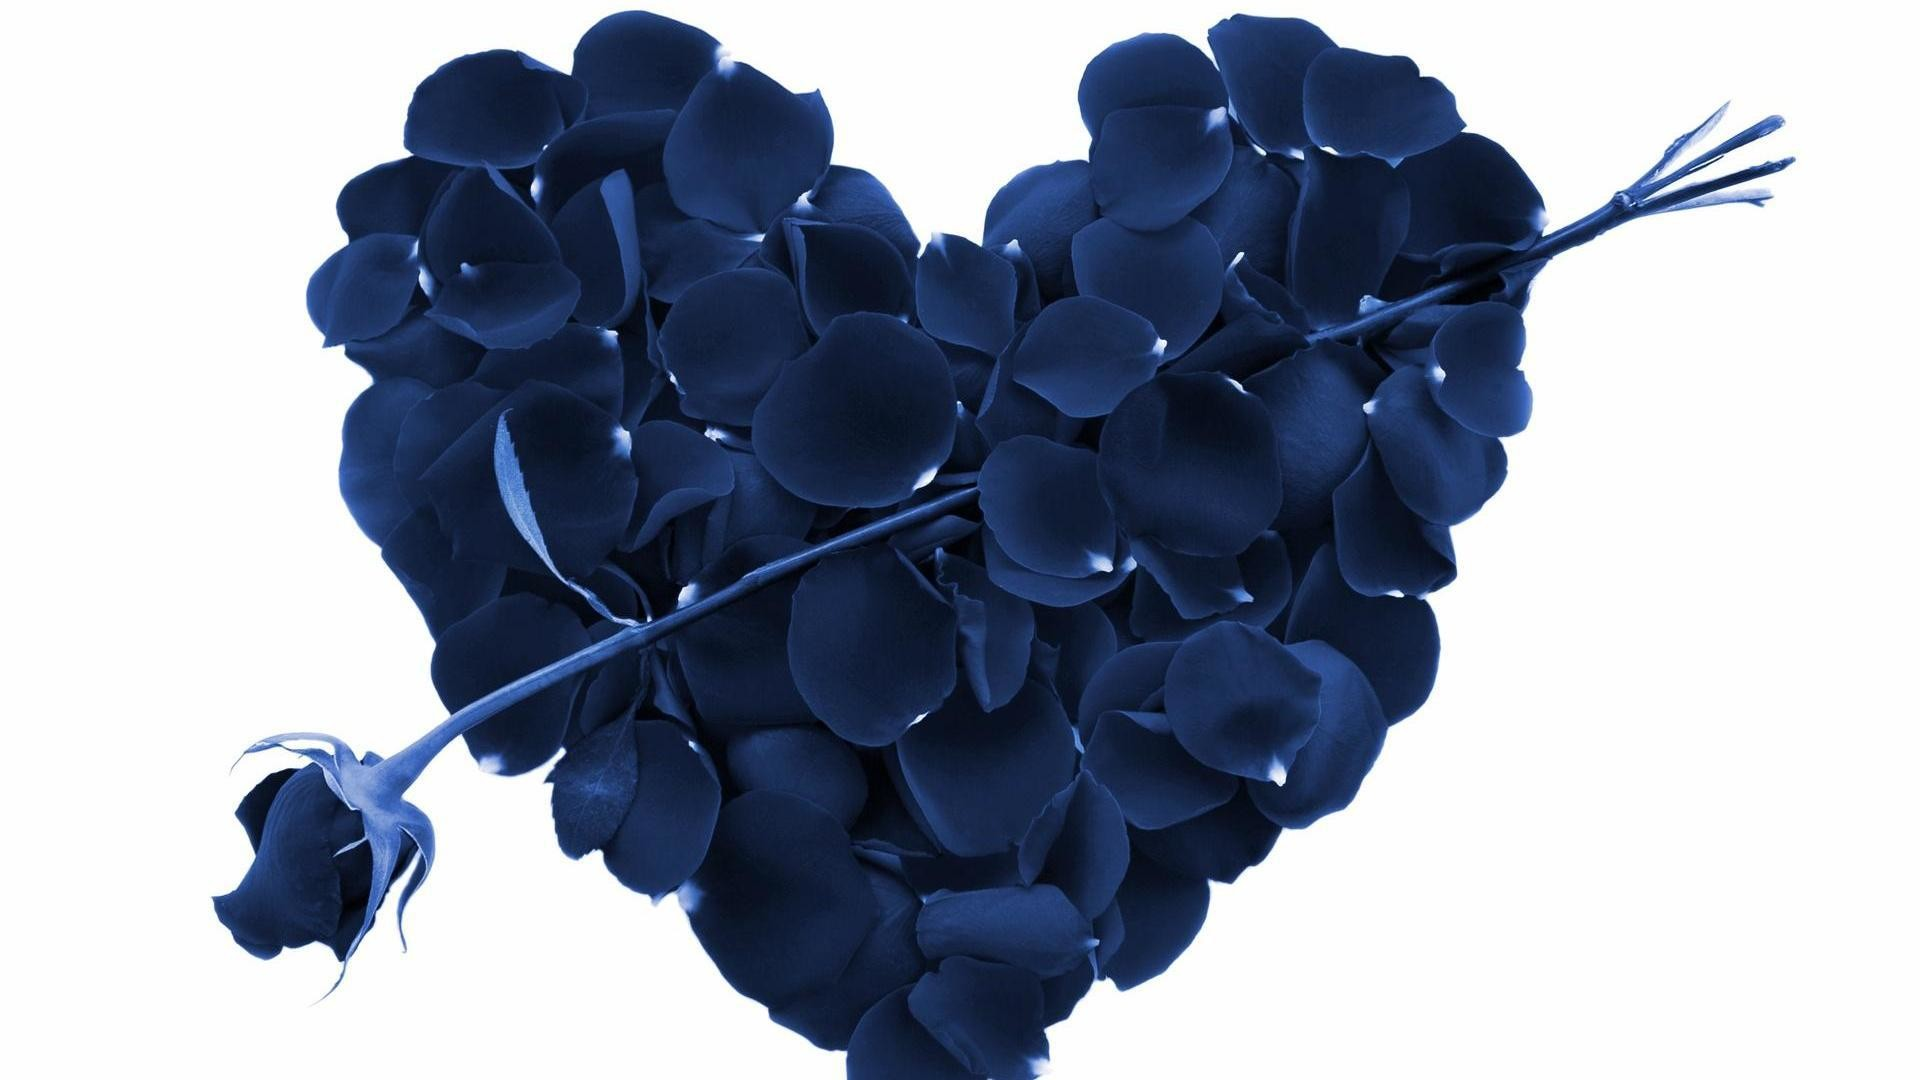 Blue Love Hearts Wallpaper Free HD